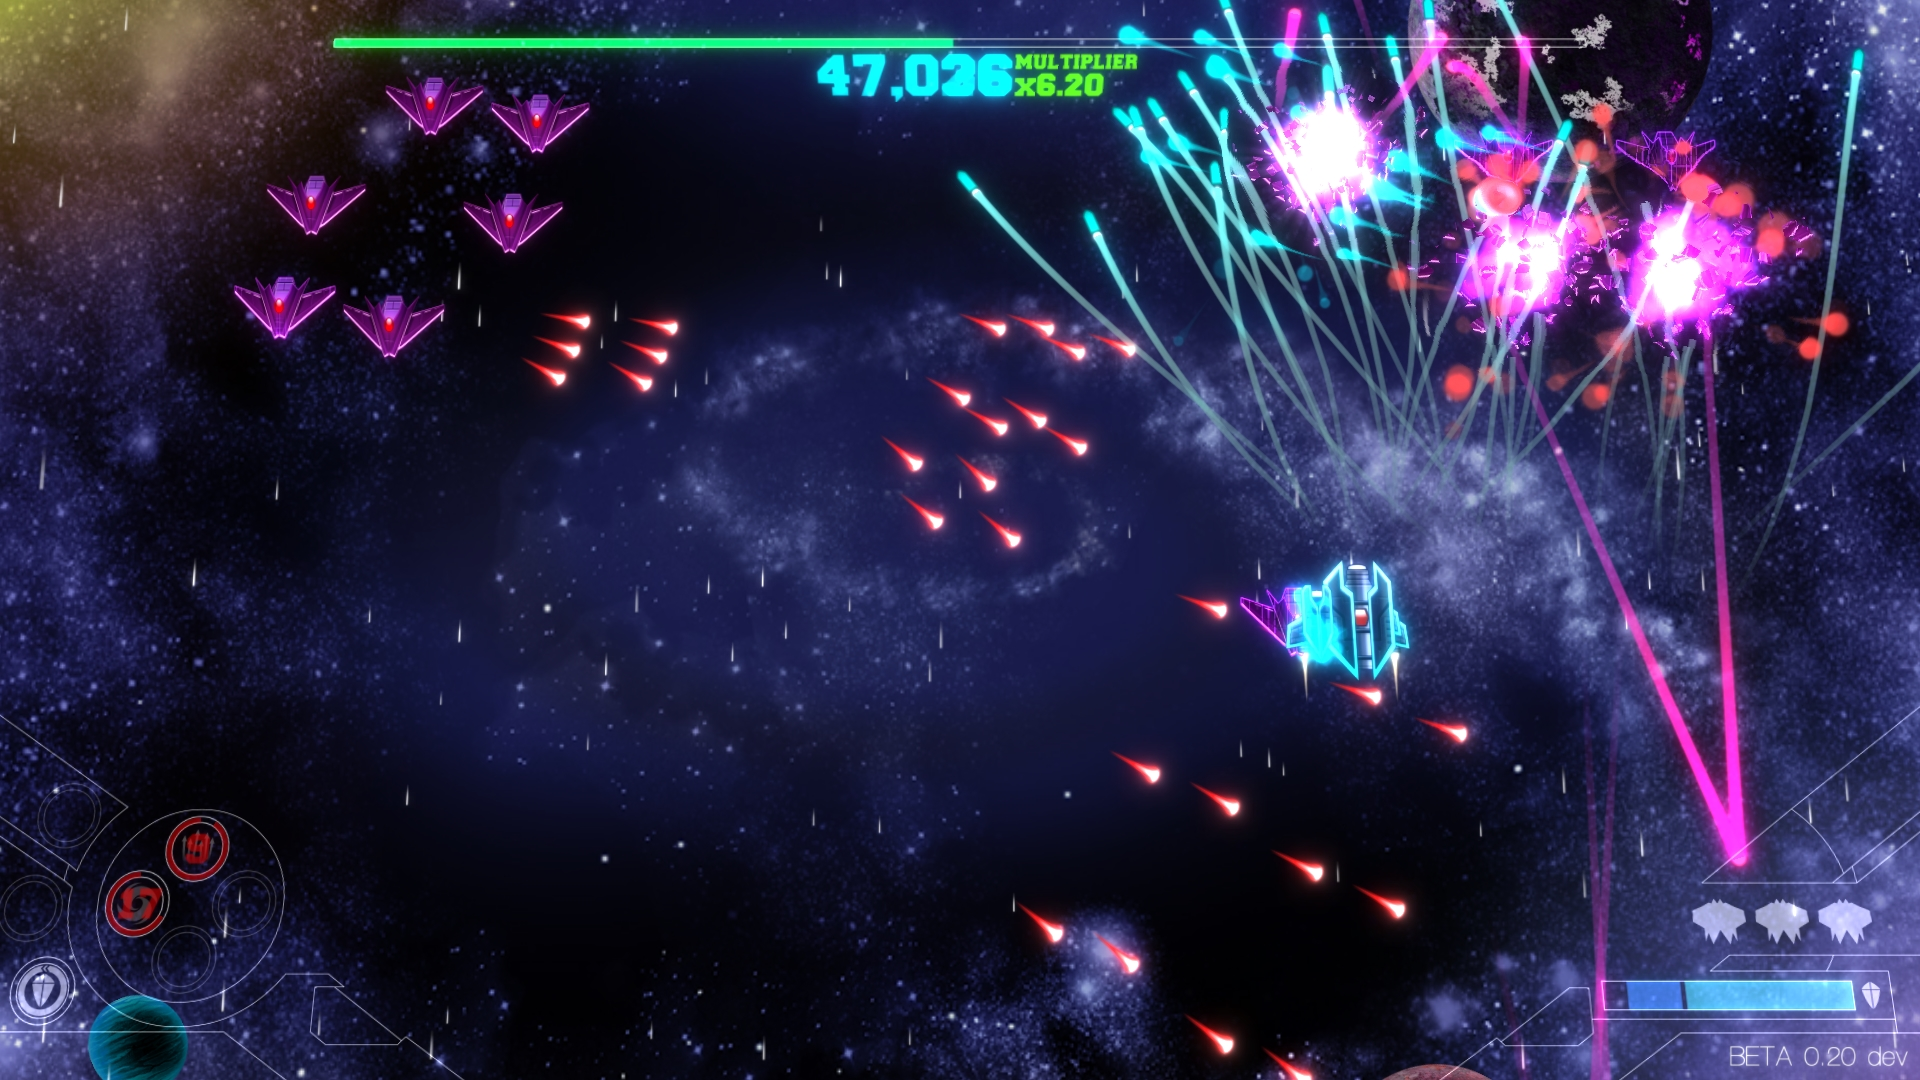 Screenshot from Roche Fusion